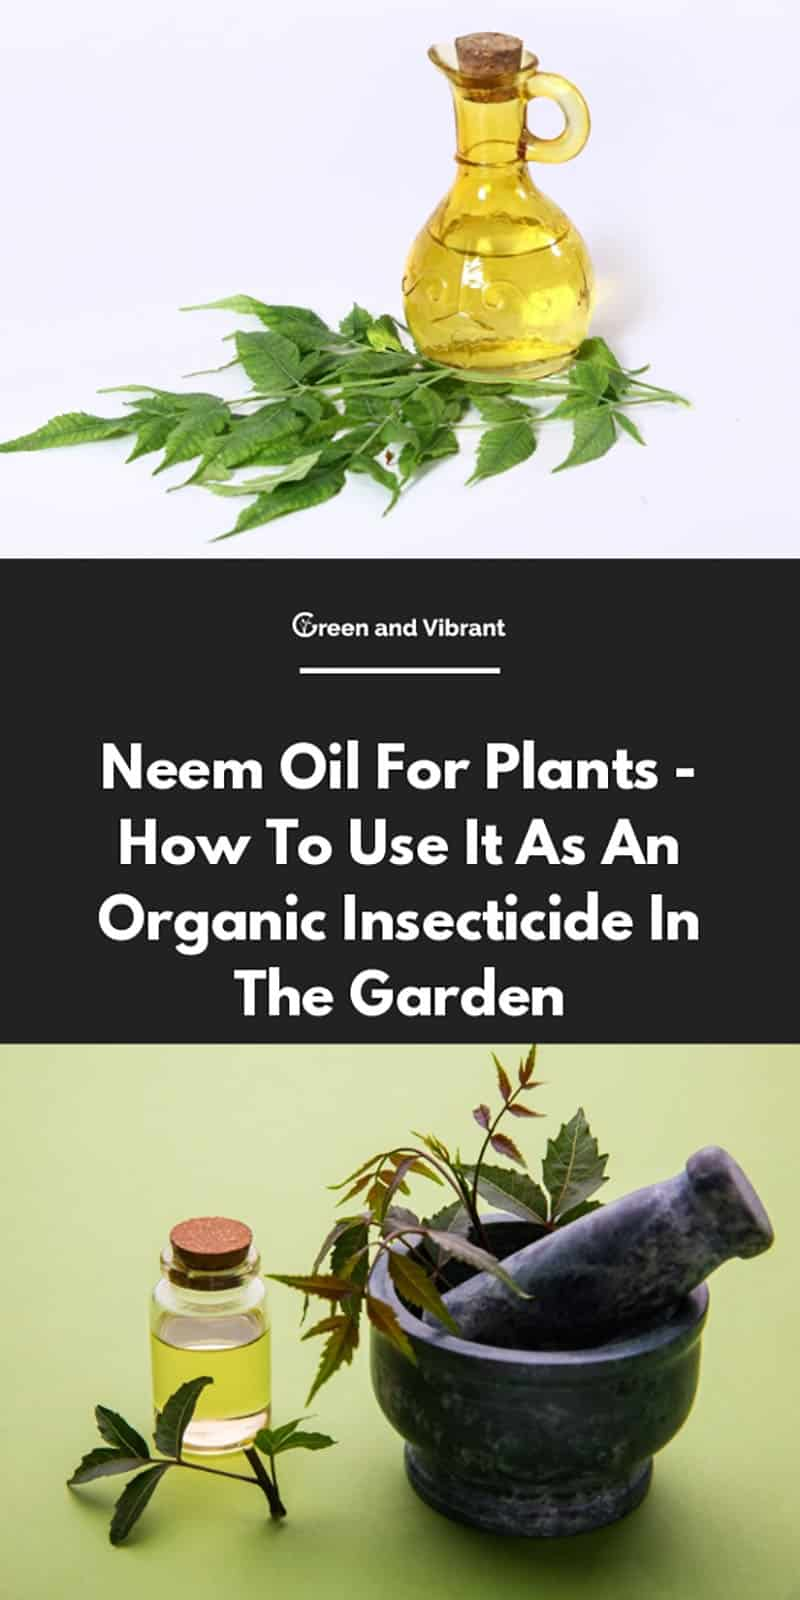 Neem Oil For Plants - How To Use It As An Organic Insecticide In The Garden